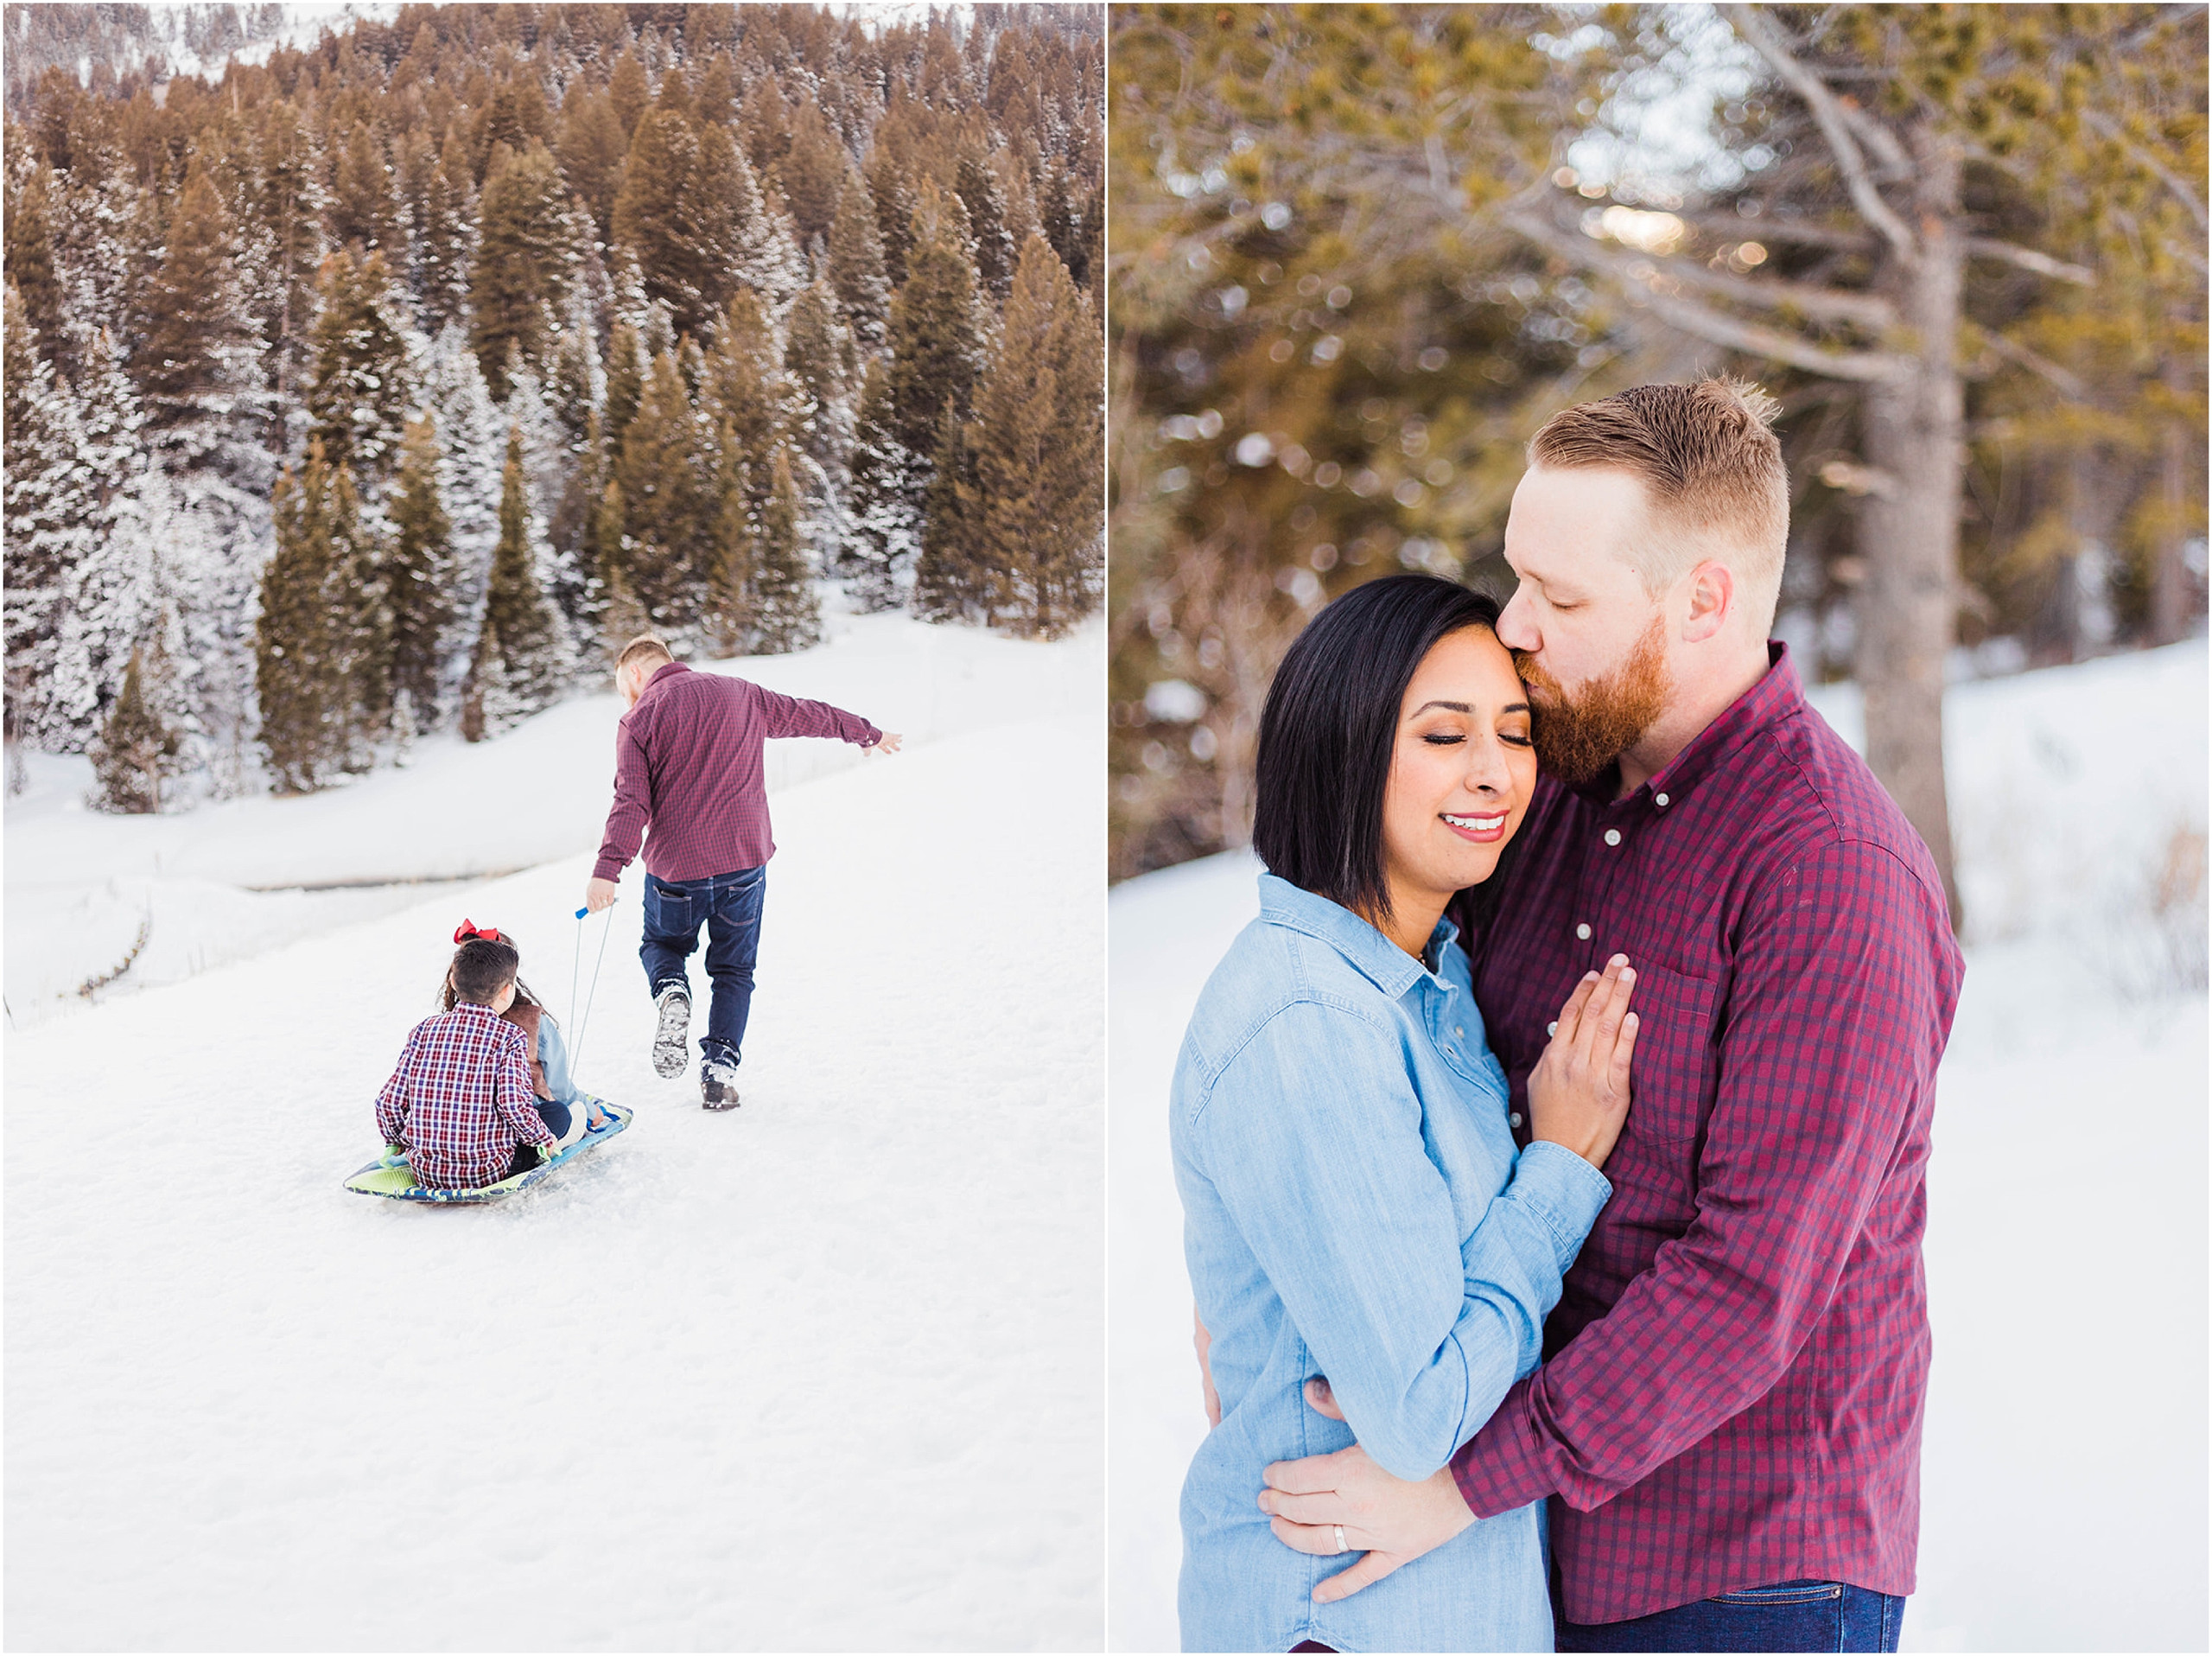 Kenzie Jo Photography, Winter family pictures at Tibble Fork Reservoir, Utah family photographer, what to wear for family pictures